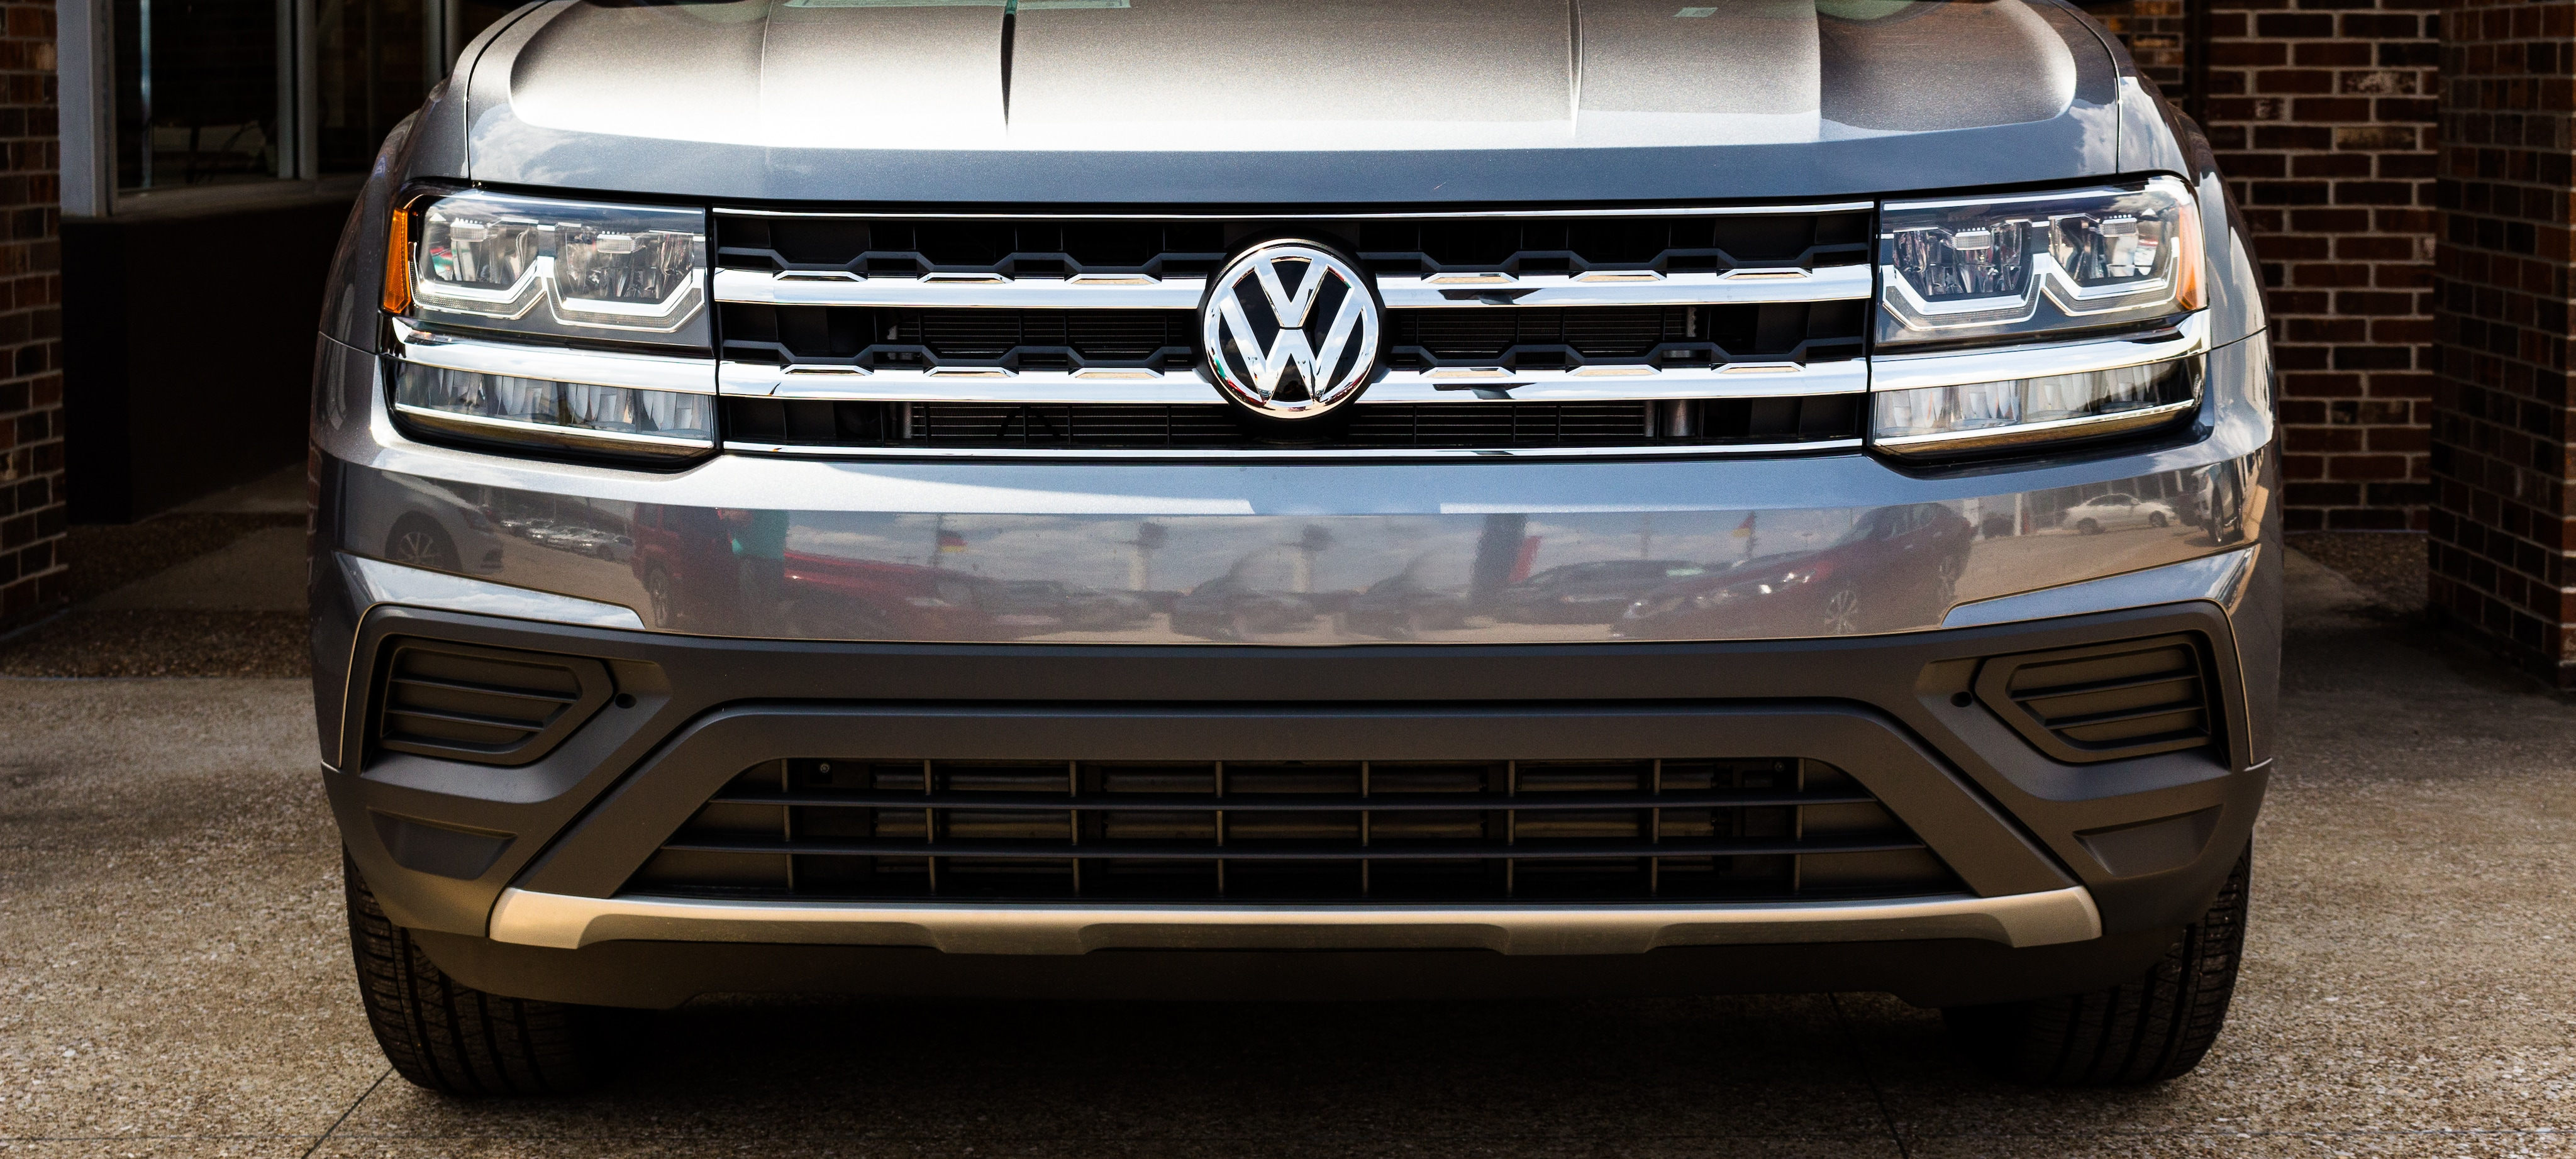 Indiana VW Contact us at D-Patrick VW of Evansville, Indiana